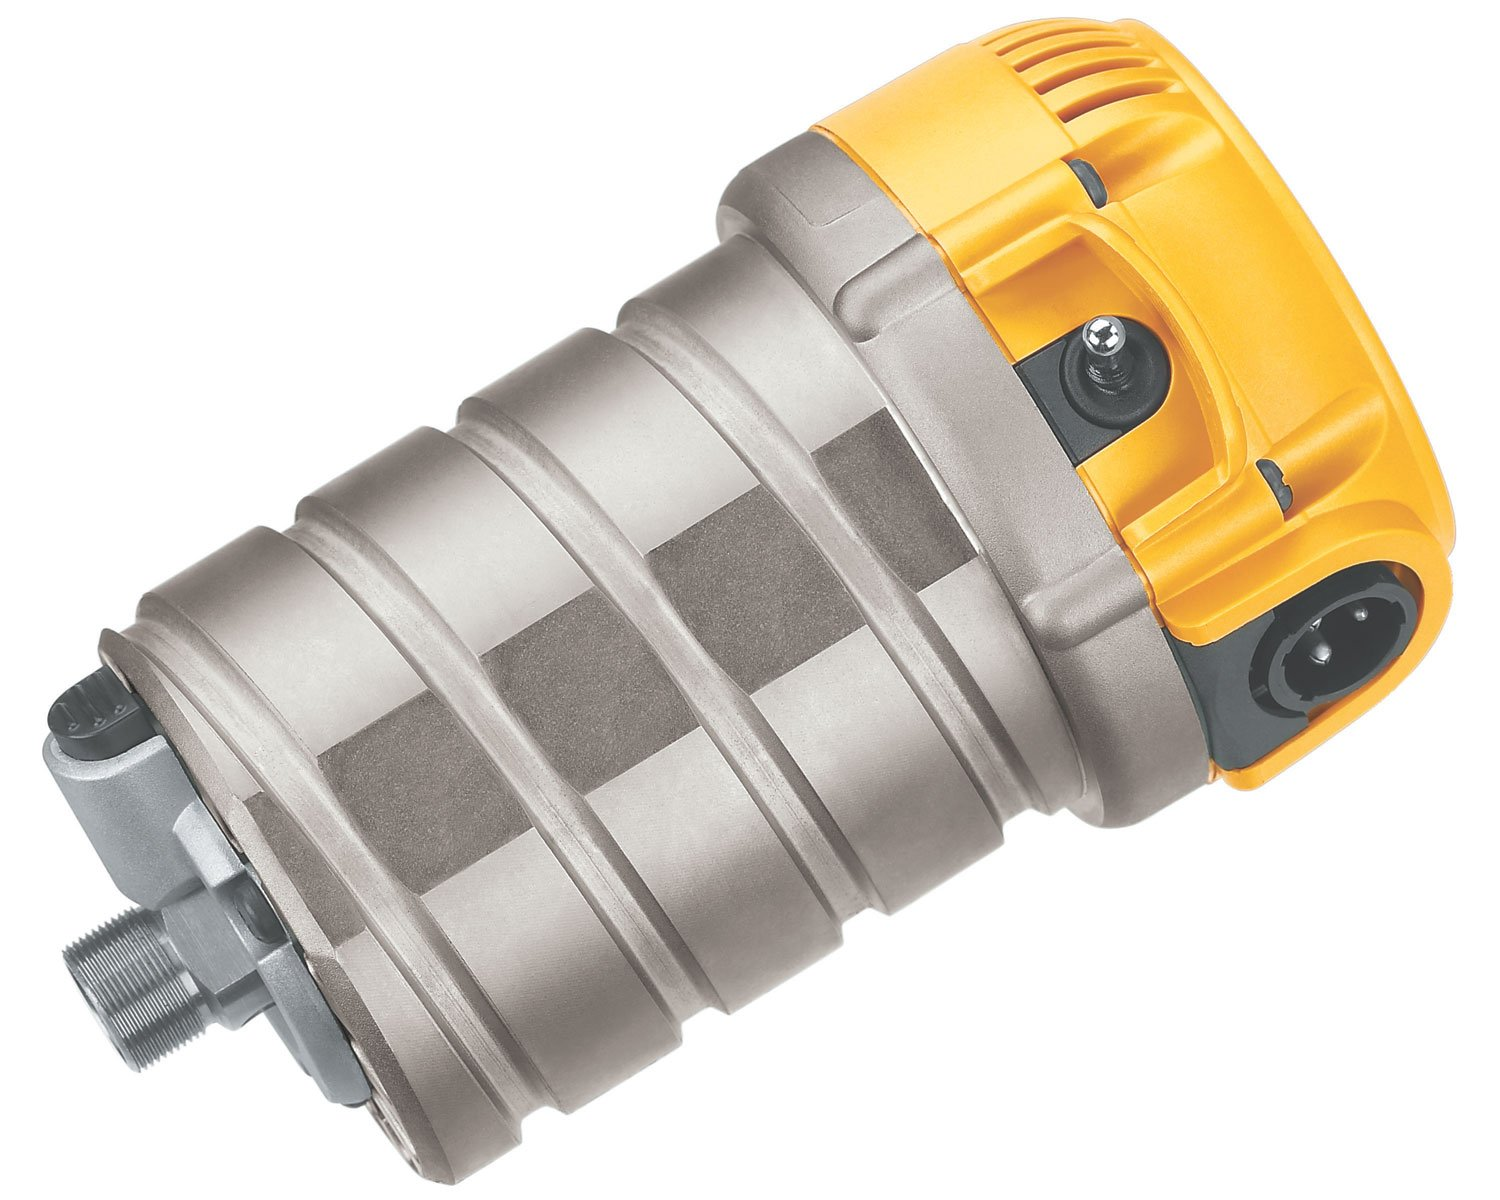 DEWALT DW618 2-1/4 HP Electronic Variable-Speed Fixed-Base Router by DEWALT (Image #8)